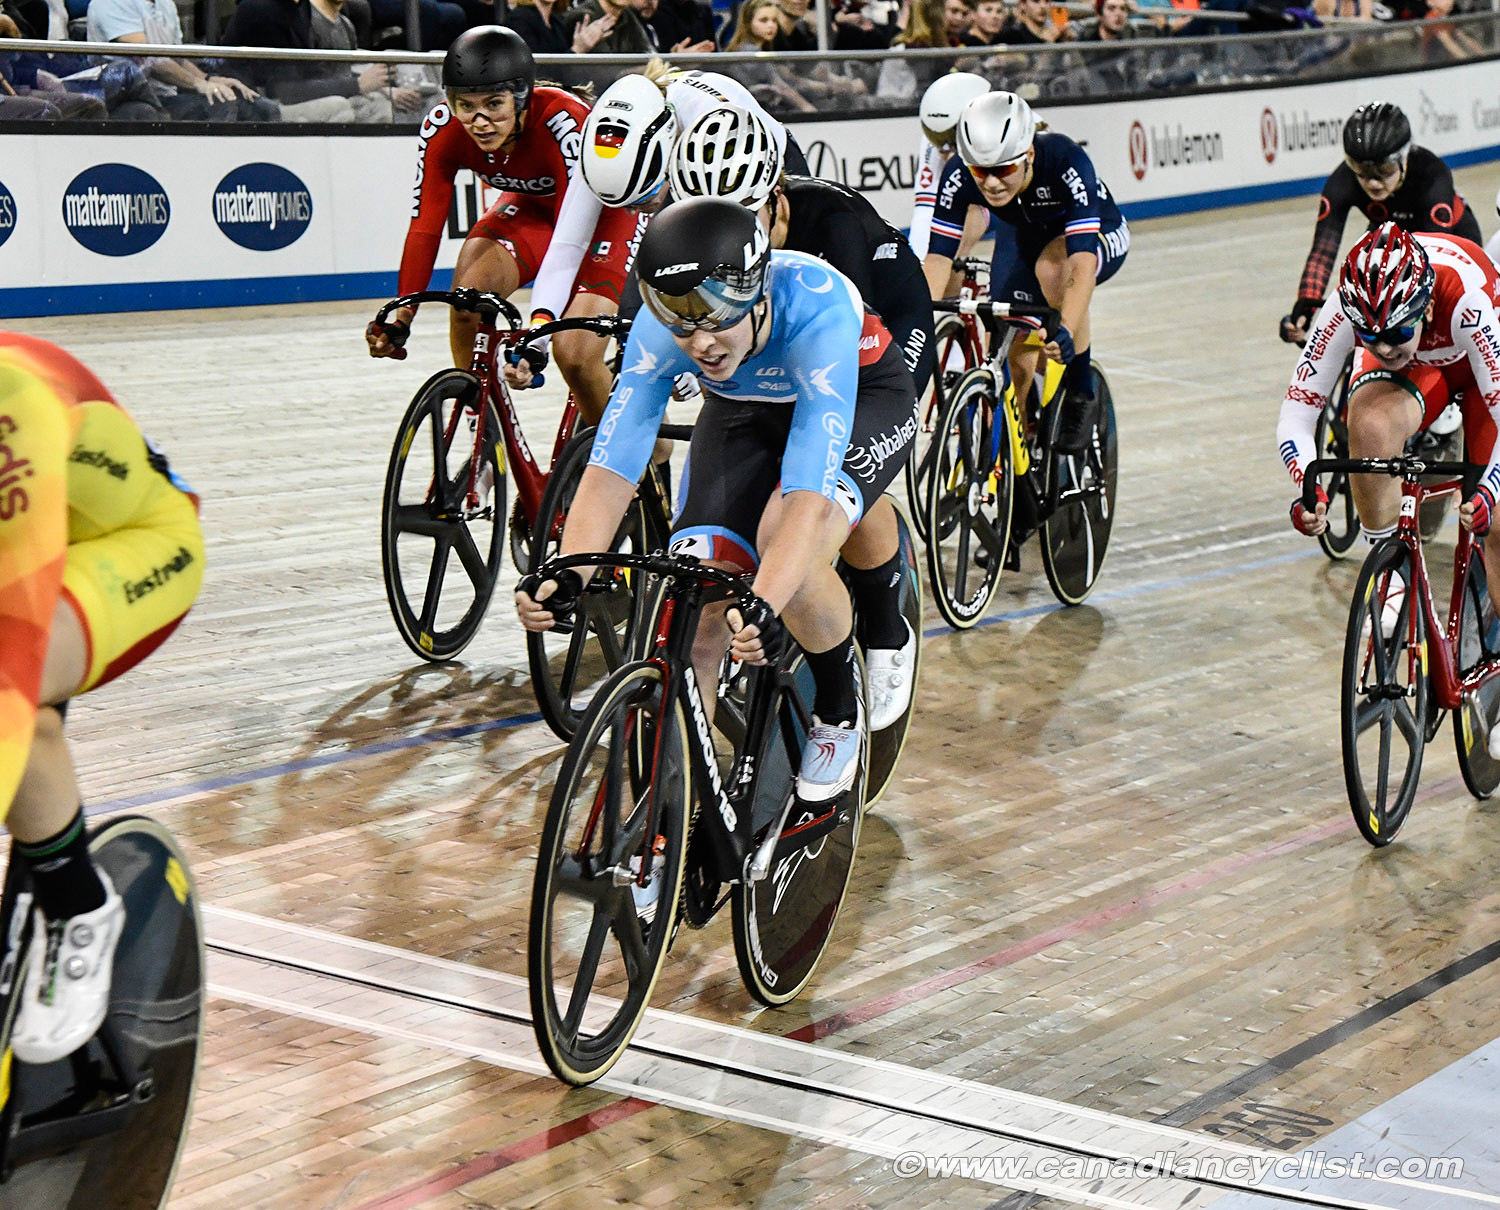 Scratch Race action with 2 Canadians in the mix -